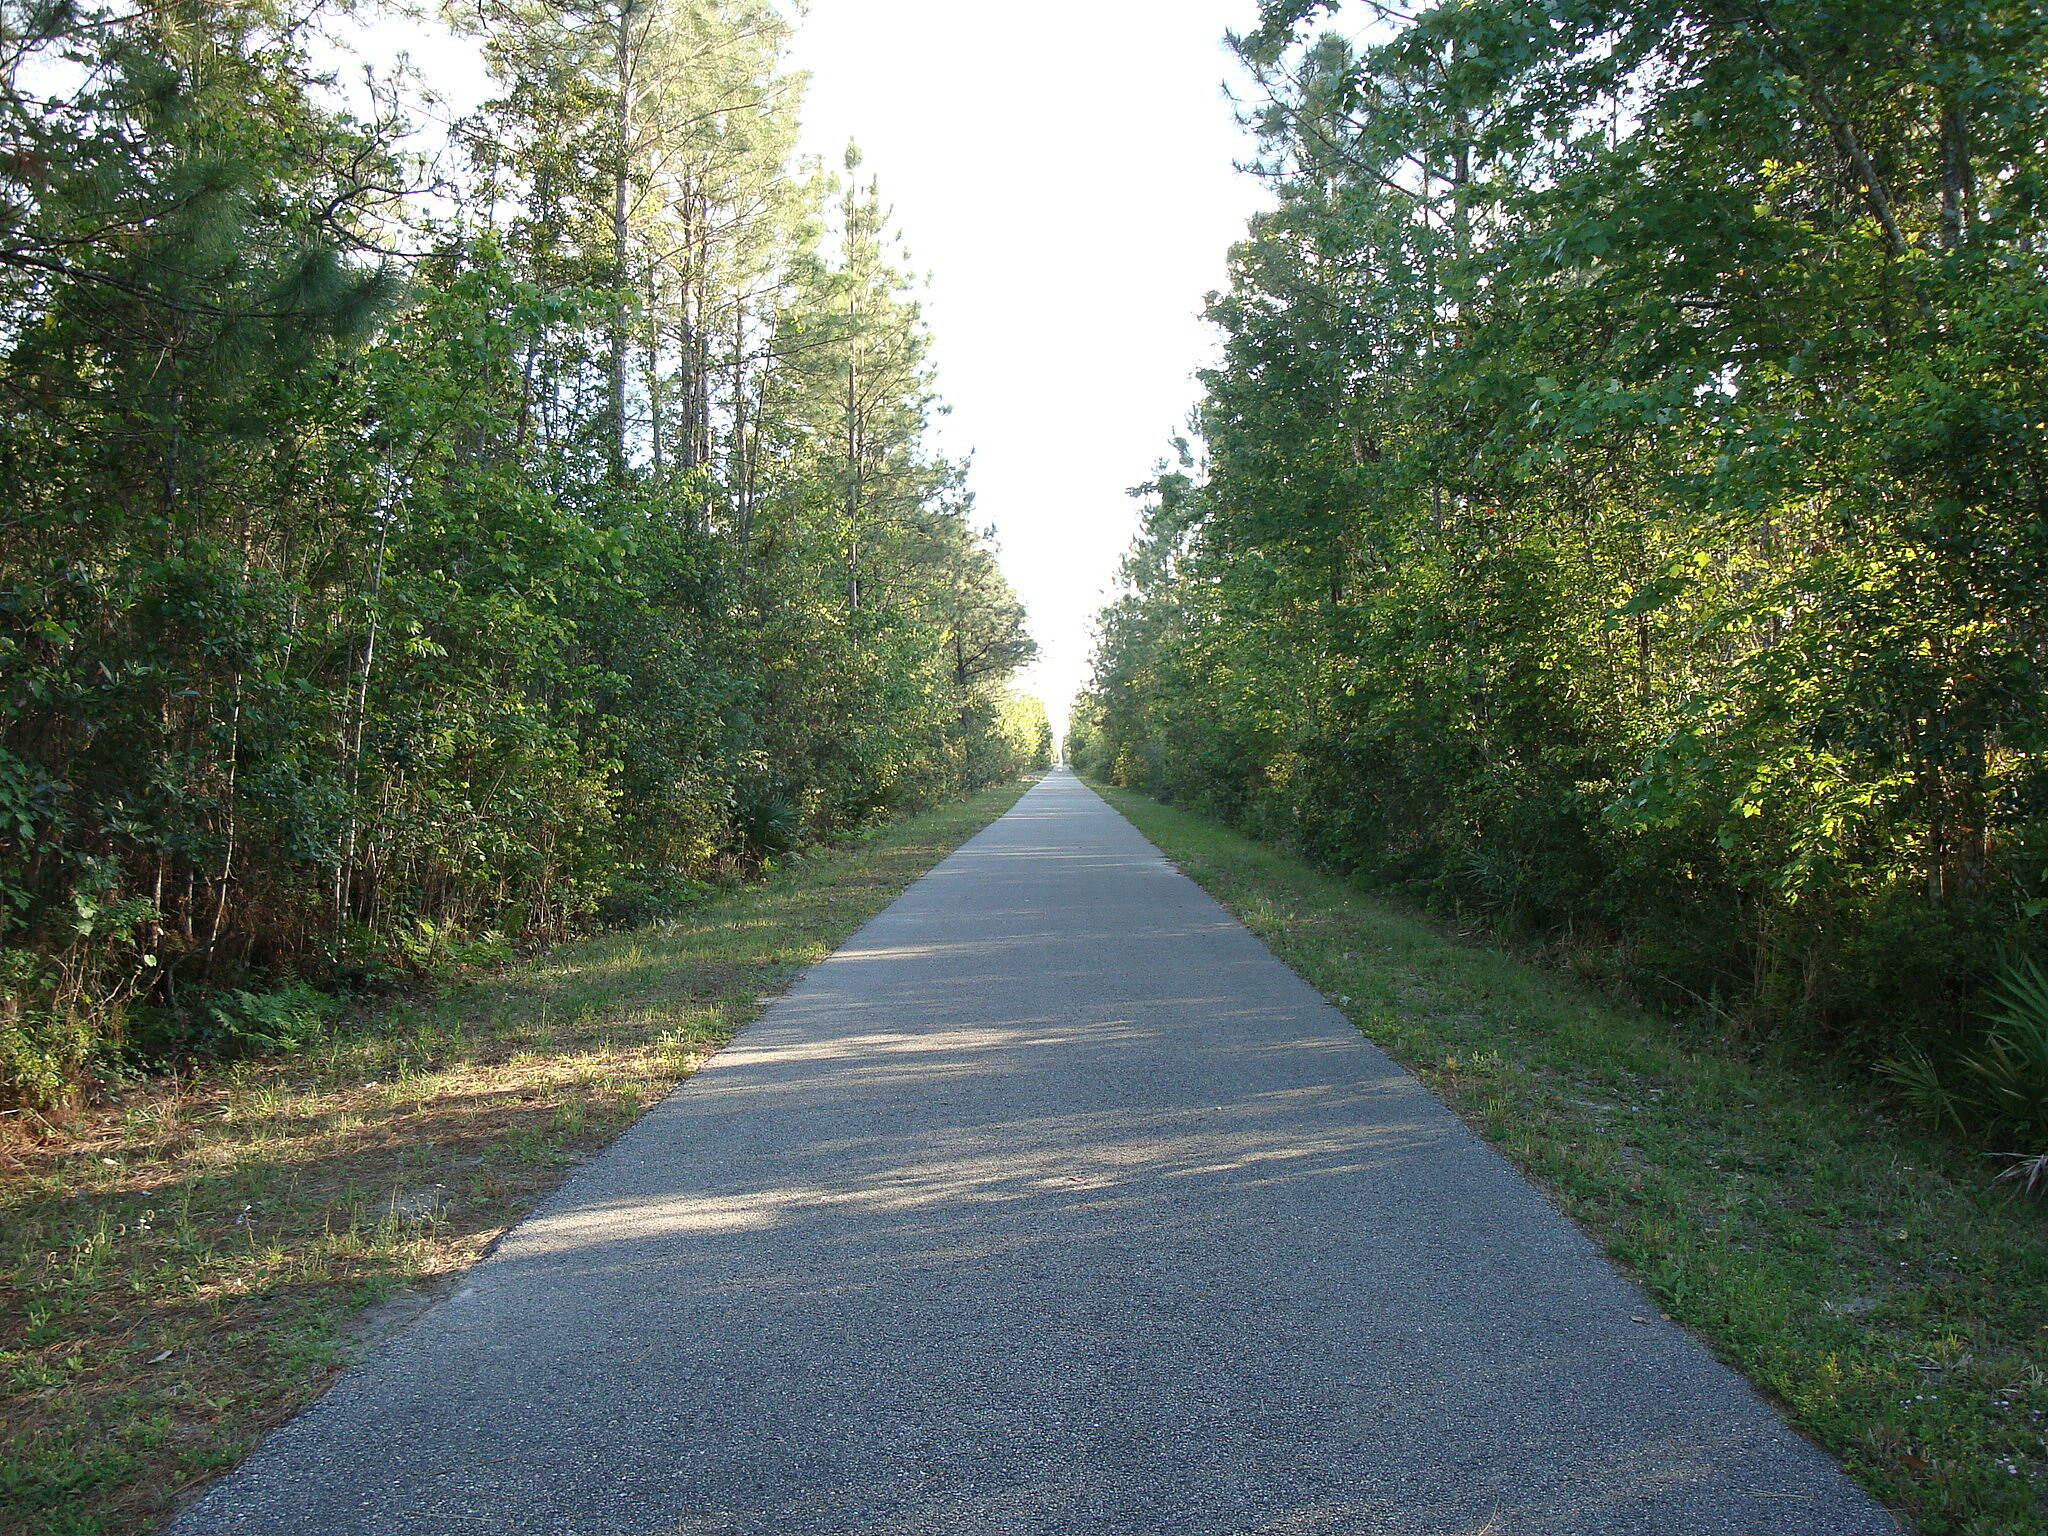 Palatka-to-St. Augustine State Trail Palatka - St. Augustine State Trail Straight and level.